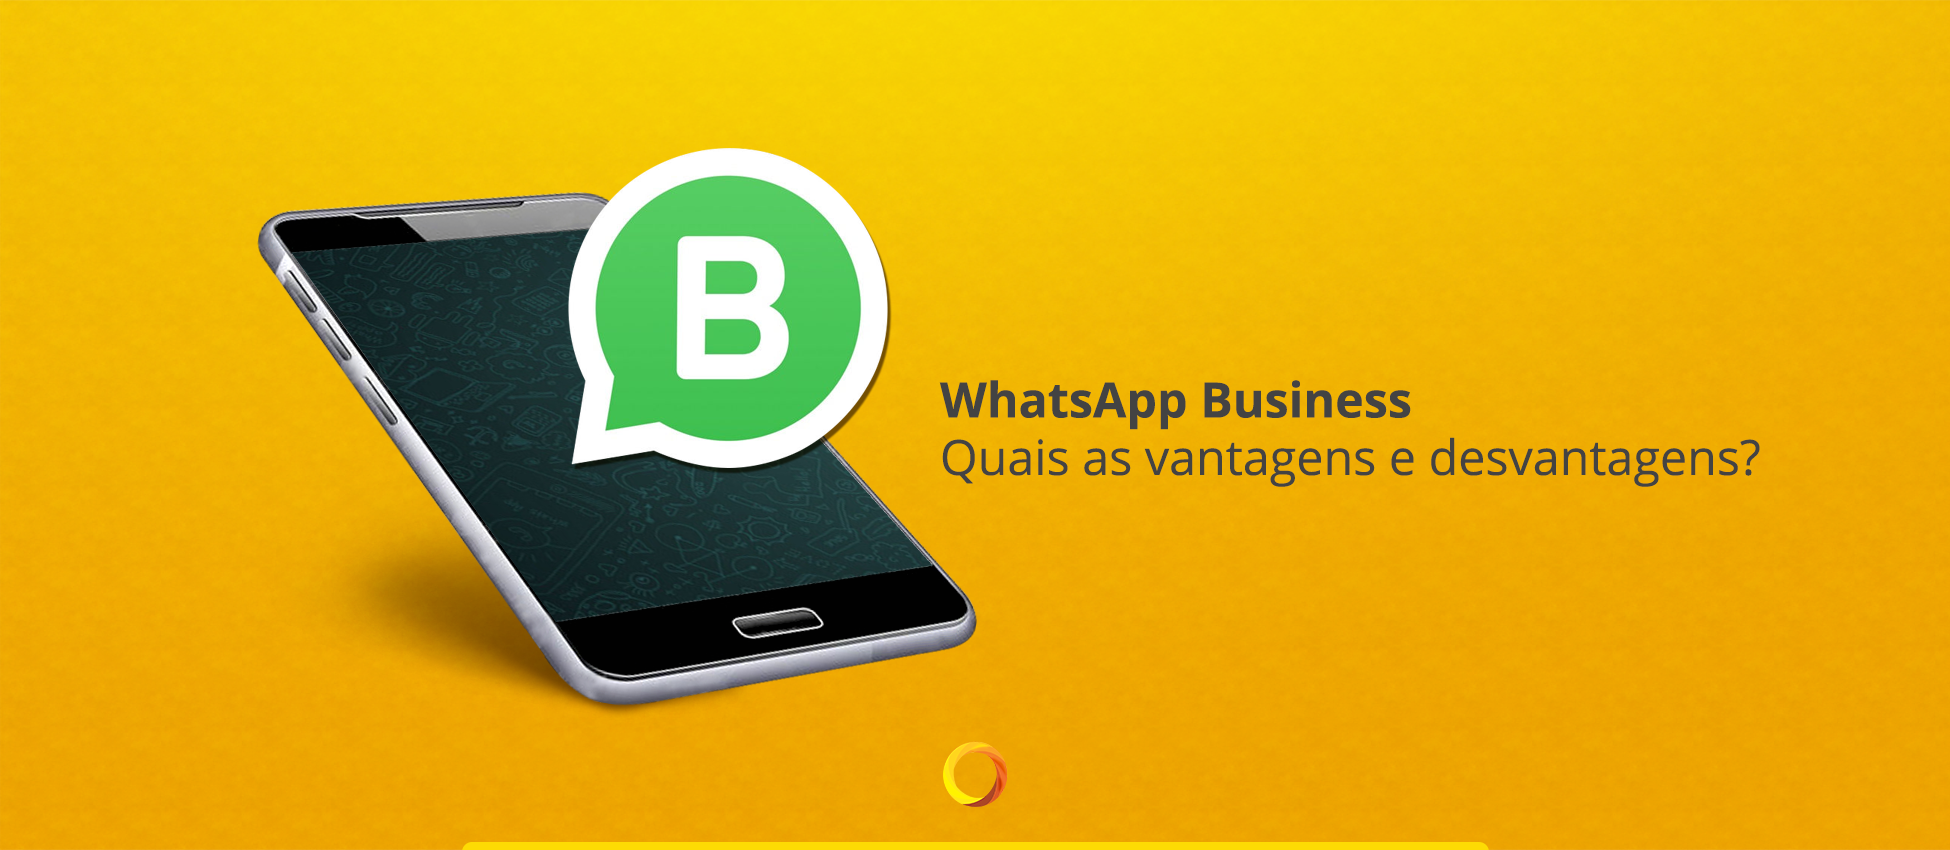 6413ebb0d WhatsApp Business - Vantagens e Desvantagens do WhatsApp Business ...